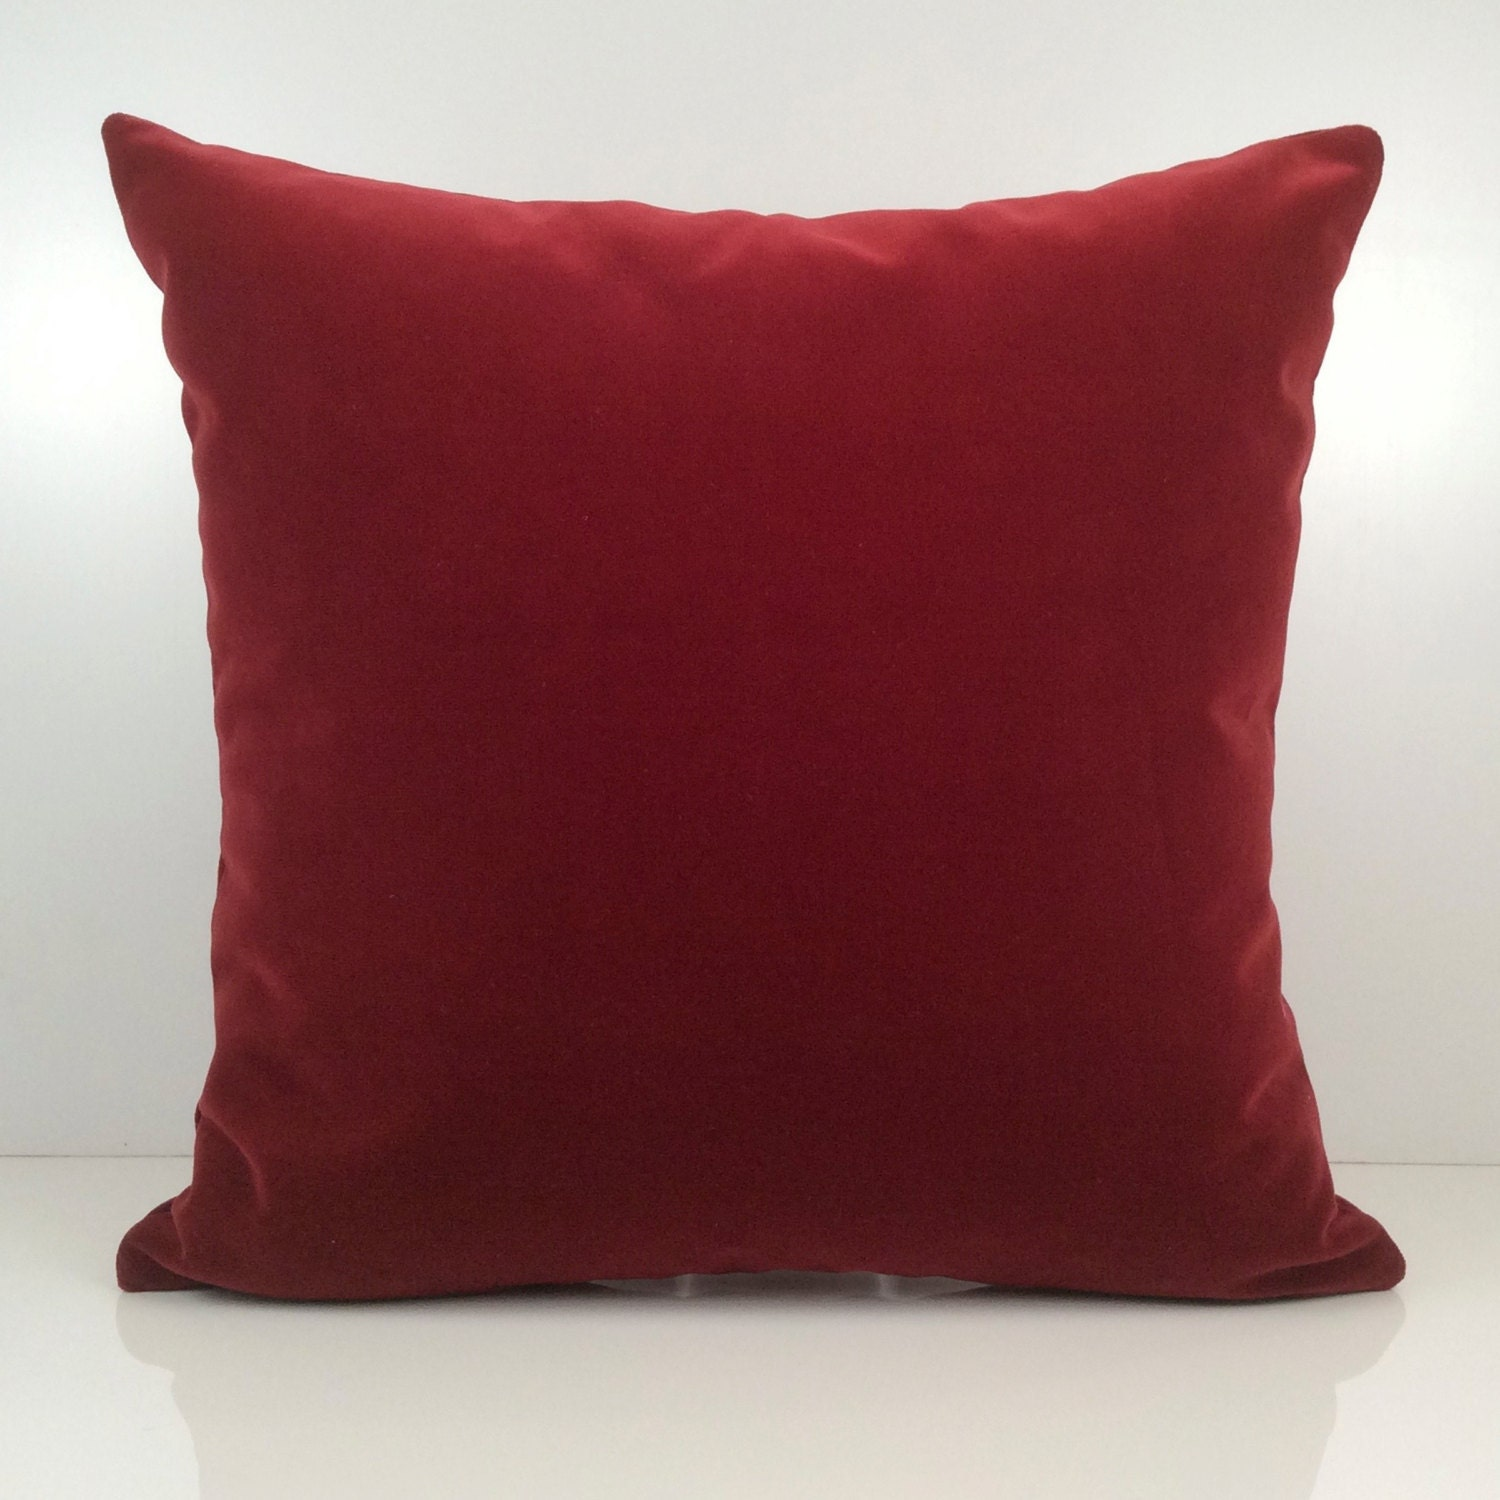 Burgundy Microfiber Throw Pillows : Bright Burgundy Pillow Throw Pillow Cover Decorative Pillow